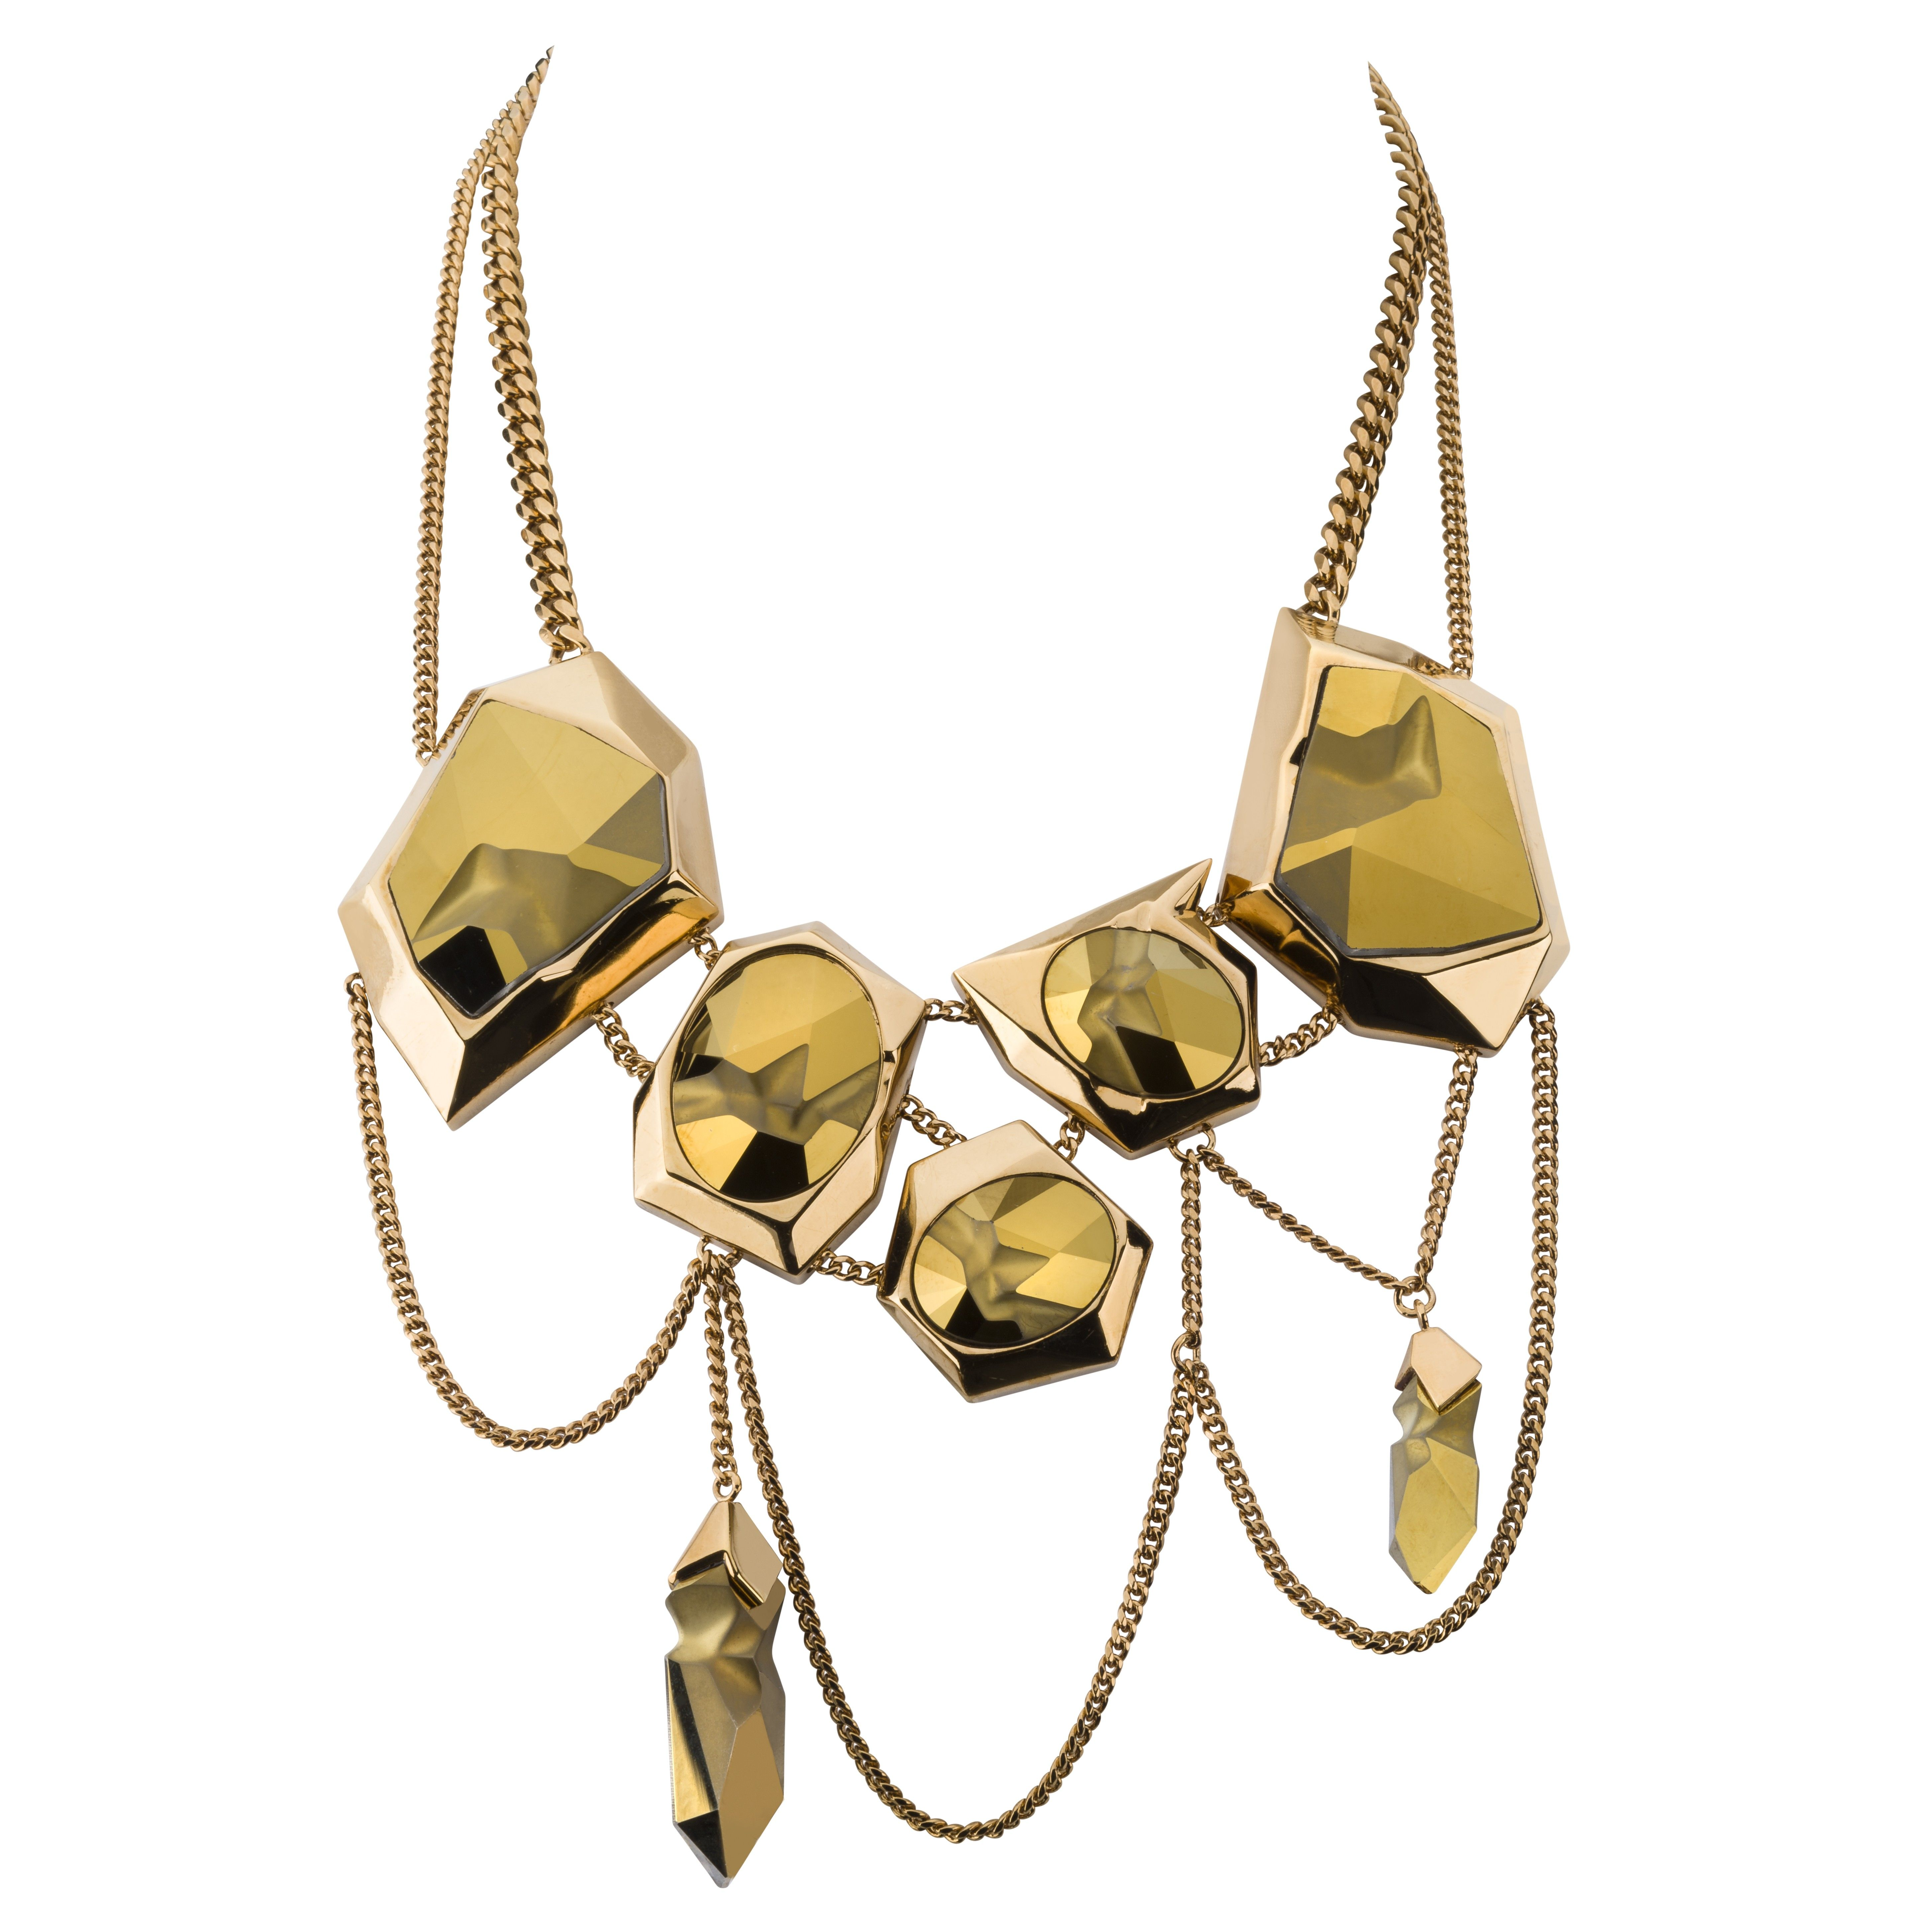 search for clearance stylish design beautiful and charming ATELIER SWAROVSKI - Reverse Necklace by Jean Paul Gaultier ...